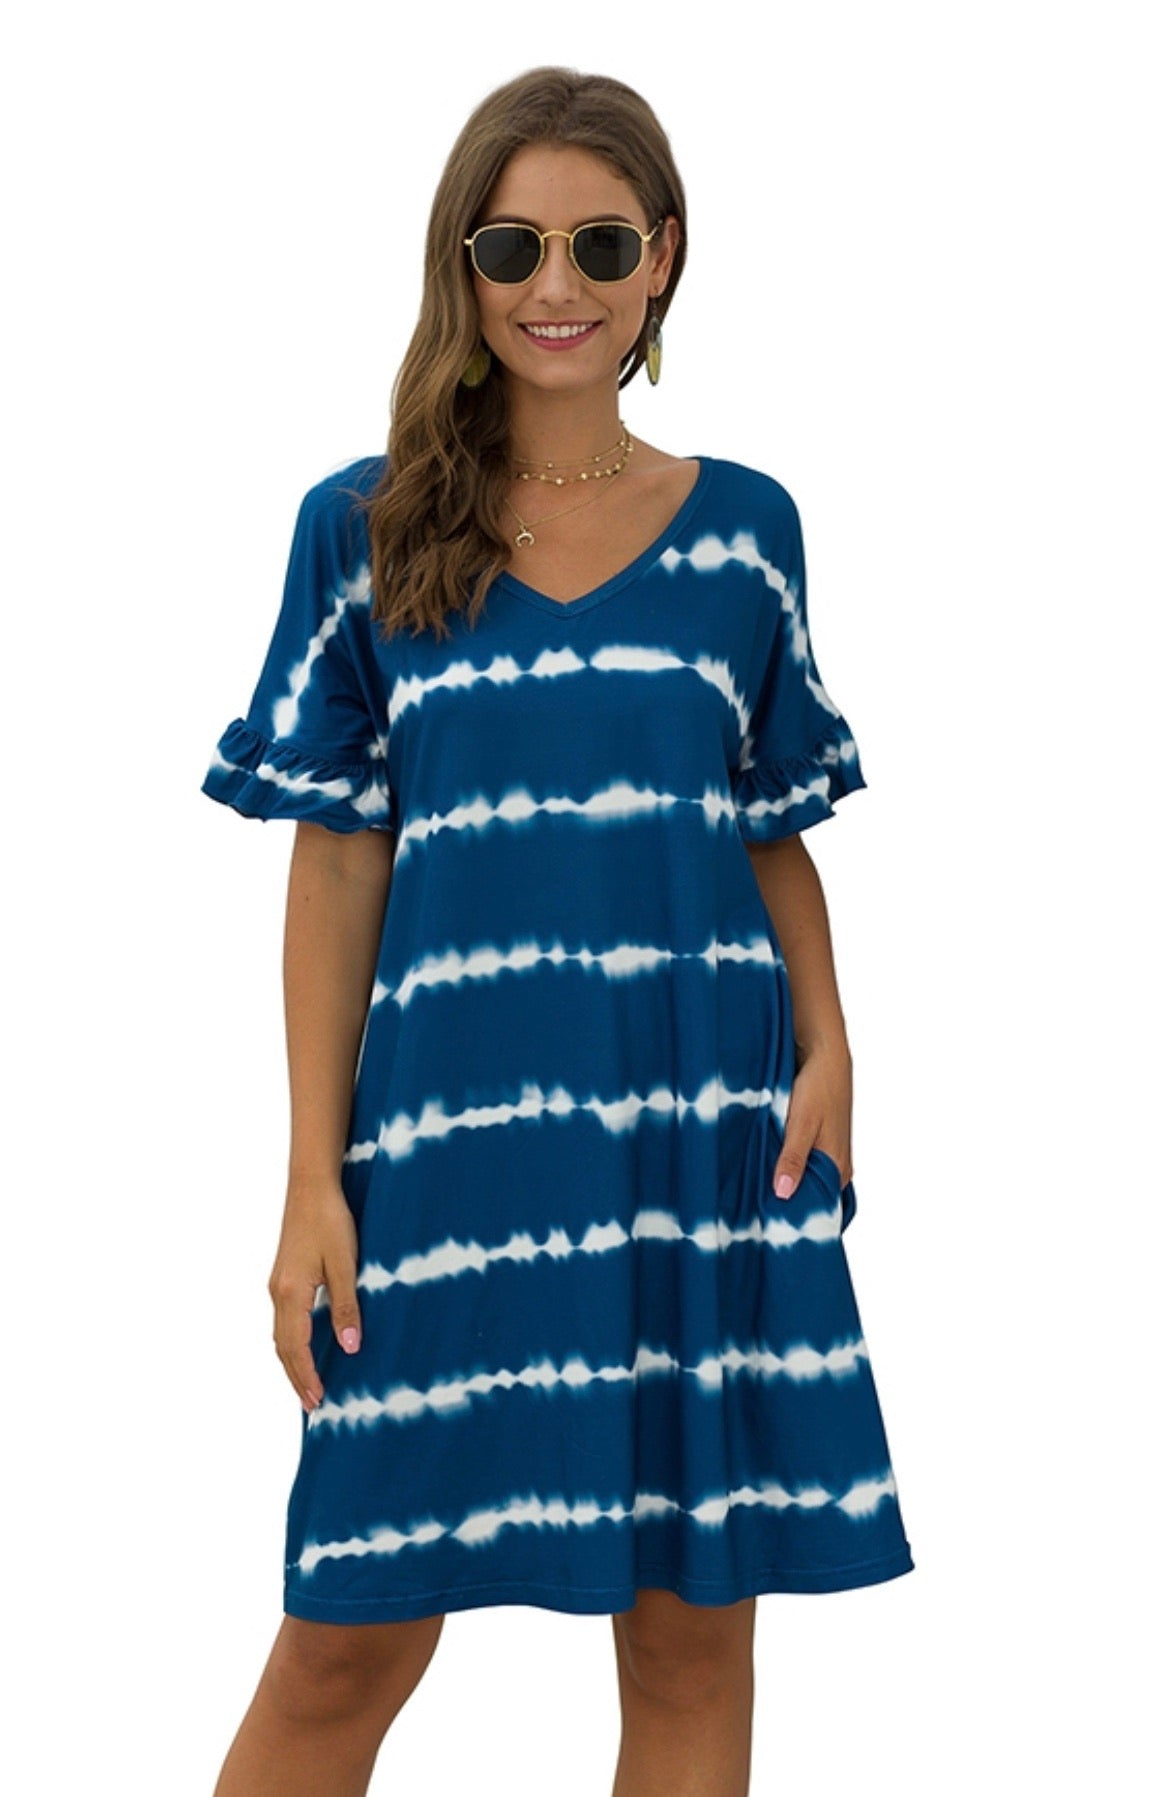 The Courtney Comfortable Dress